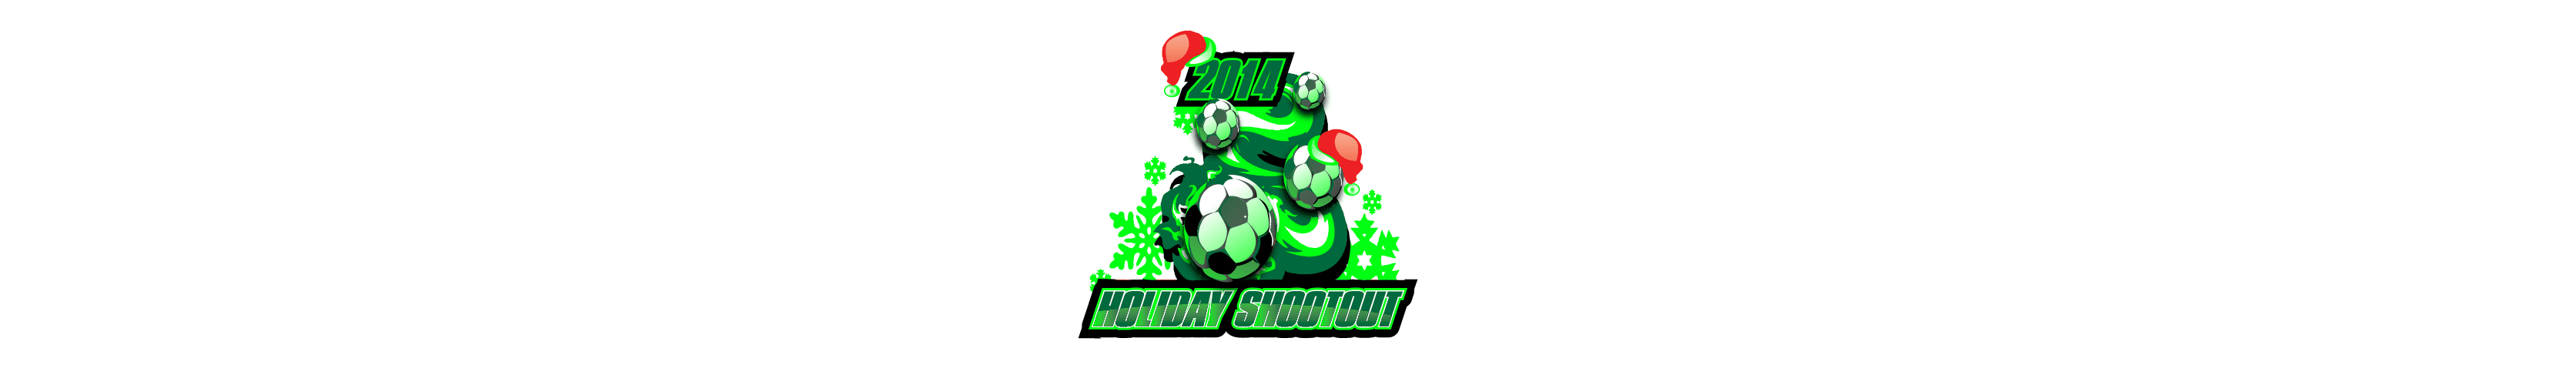 VECTOR LOGO DESIGN FOR PRINT HOLIDAY SHOOTOUT SOCCER EVENT